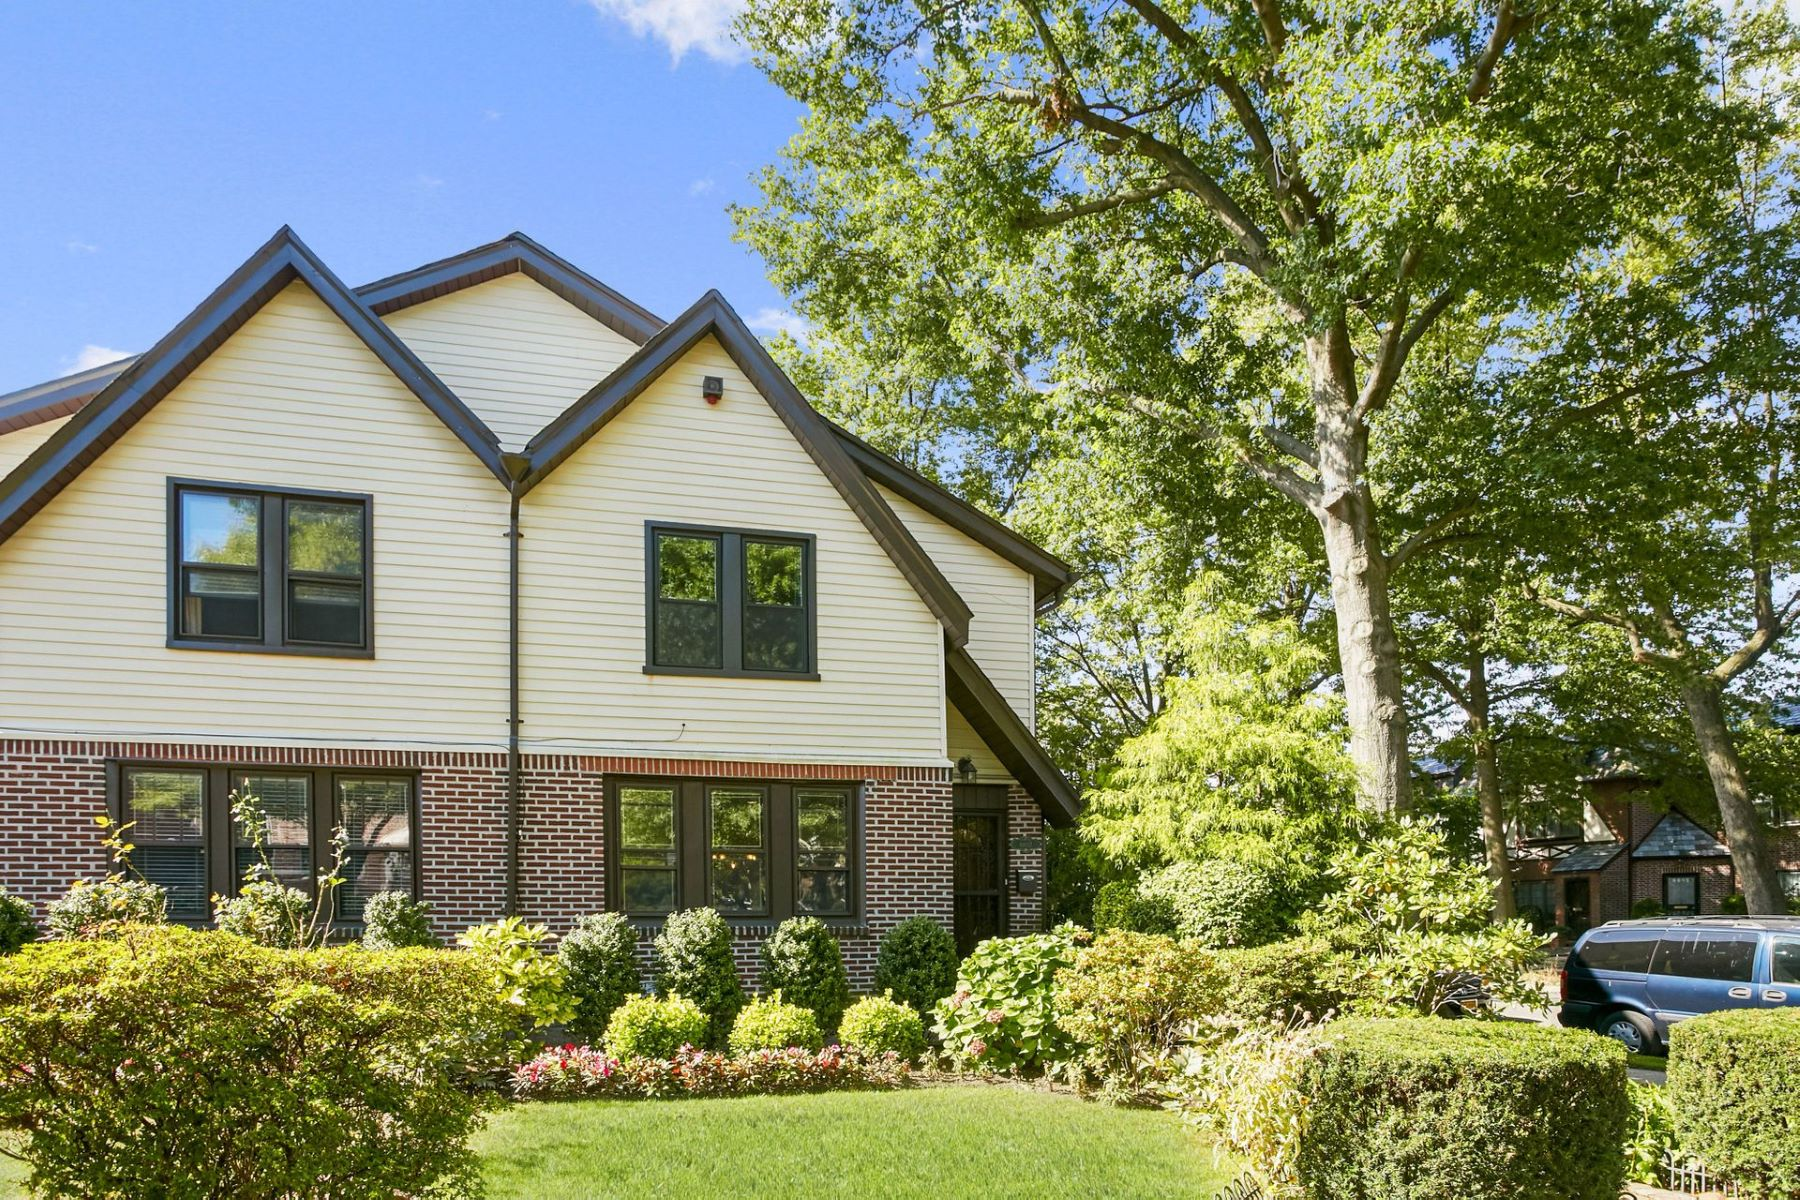 Single Family Homes for Sale at Forest Hills 68-02 Fleet St Forest Hills, New York 11375 United States